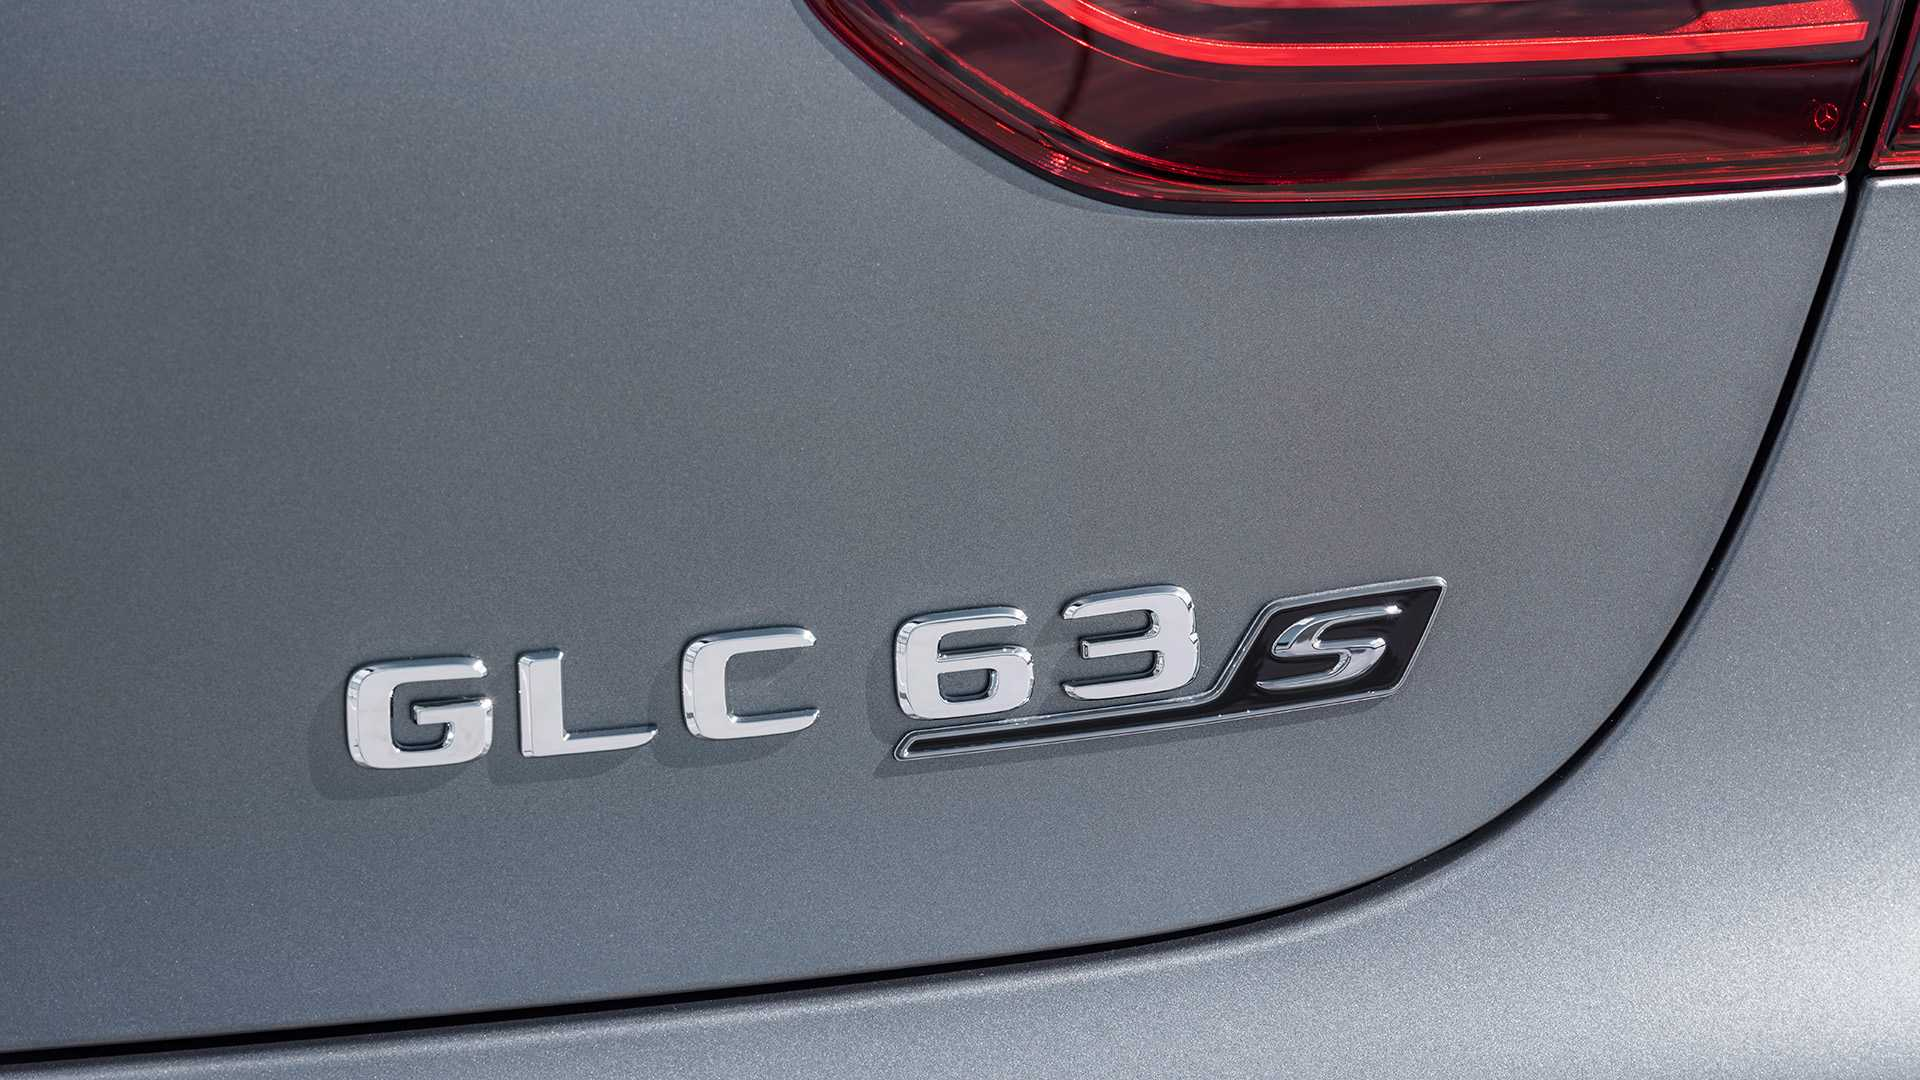 2020 Mercedes-AMG GLC 63 Coupe Badge Wallpaper (14)